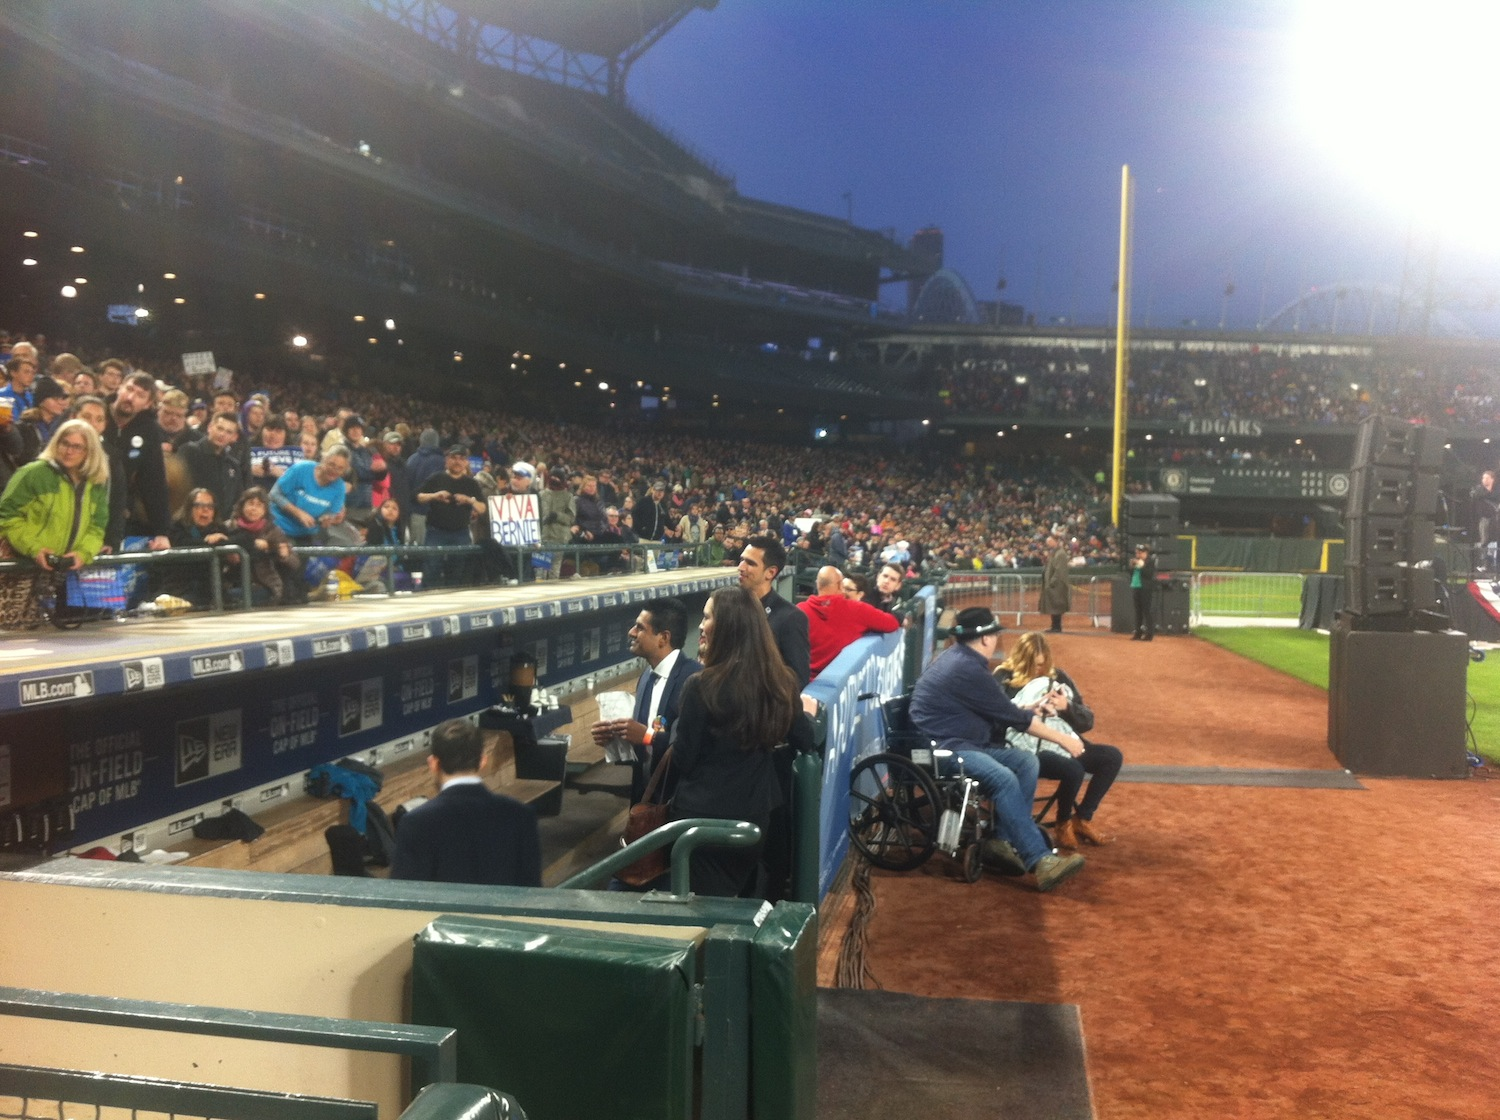 Dugout at Safeco Field for Bernie Sanders Rally on March 25th, 2016. John Popper is also pictured.